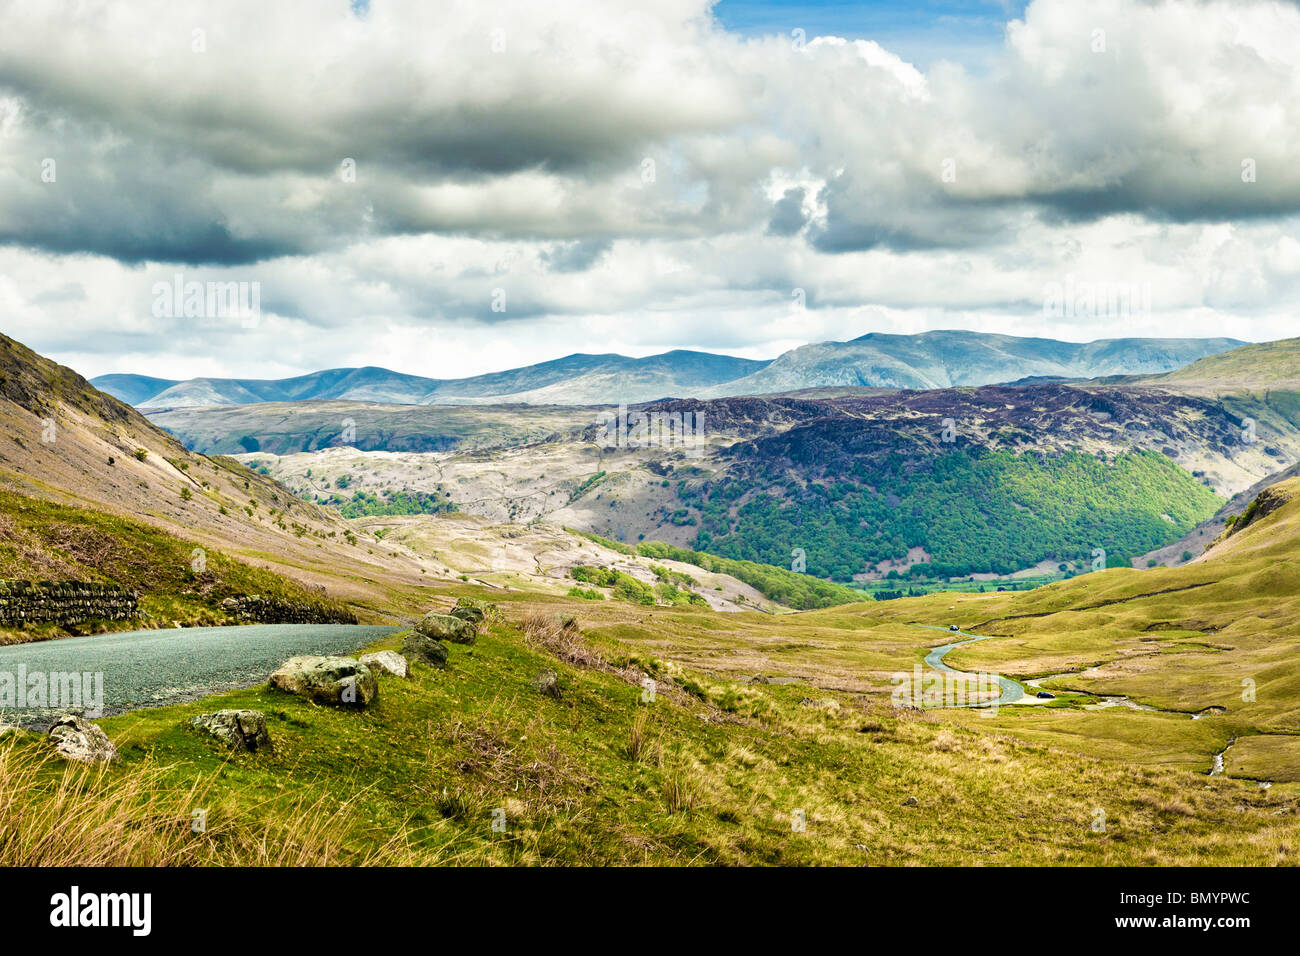 Honister Pass in the Lake District, Cumbria, England, UK - looking towards Borrowdale - Stock Image